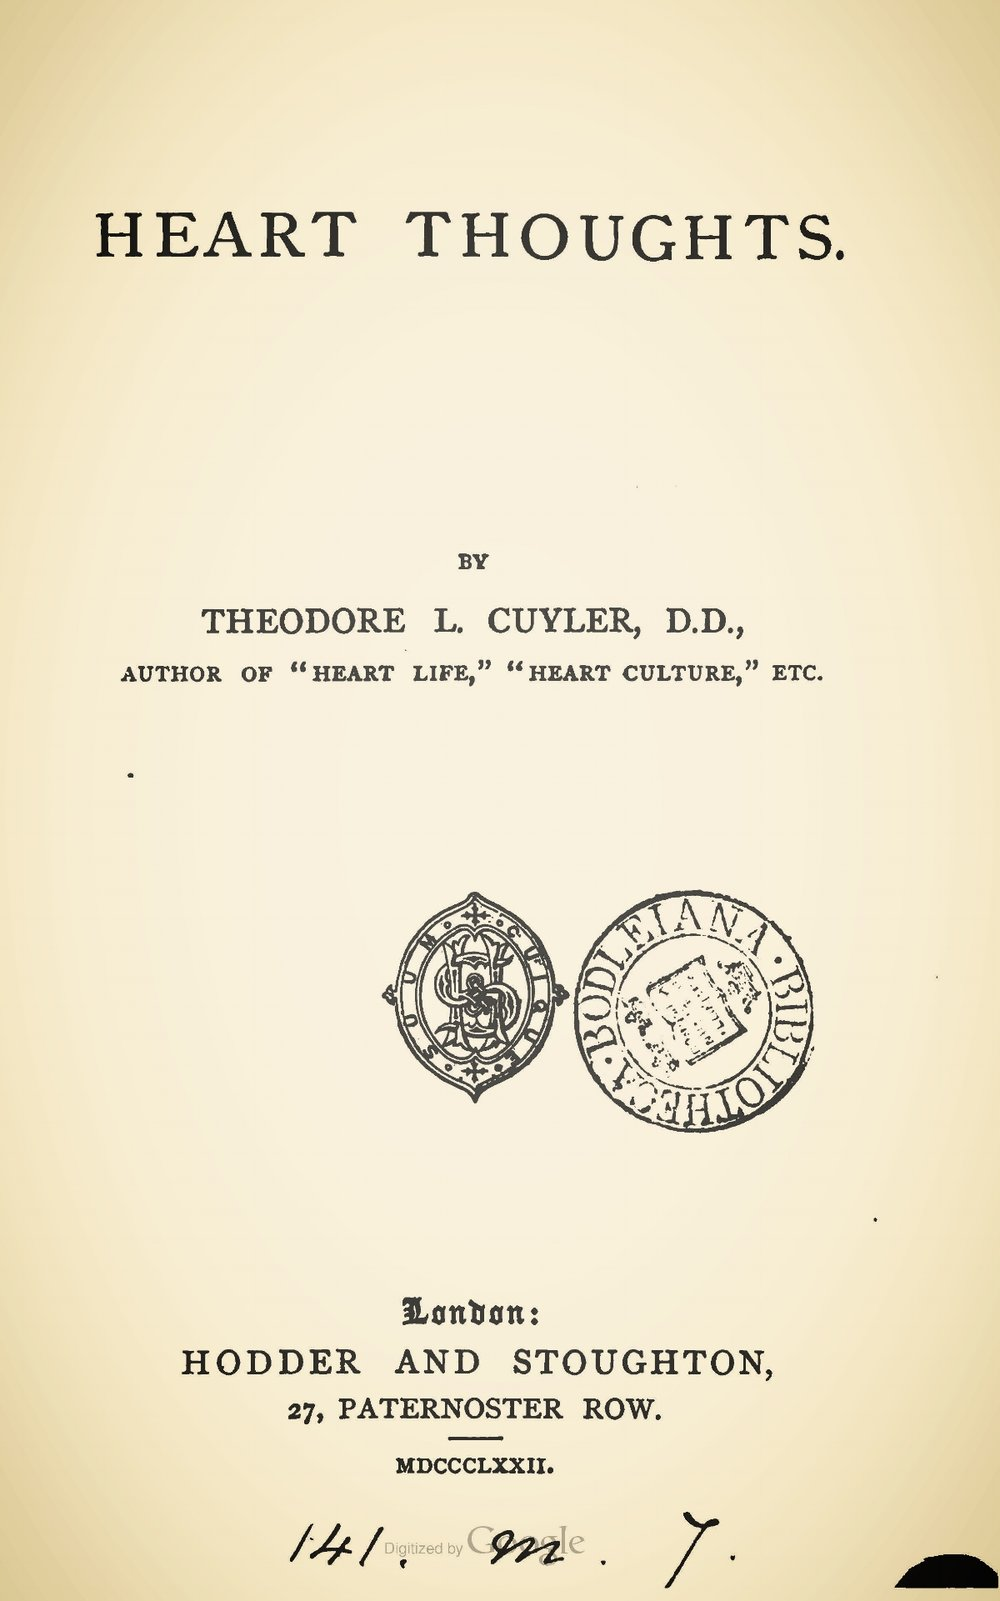 Cuyler, Theodore Ledyard, Heart Thoughts Title Page.jpg